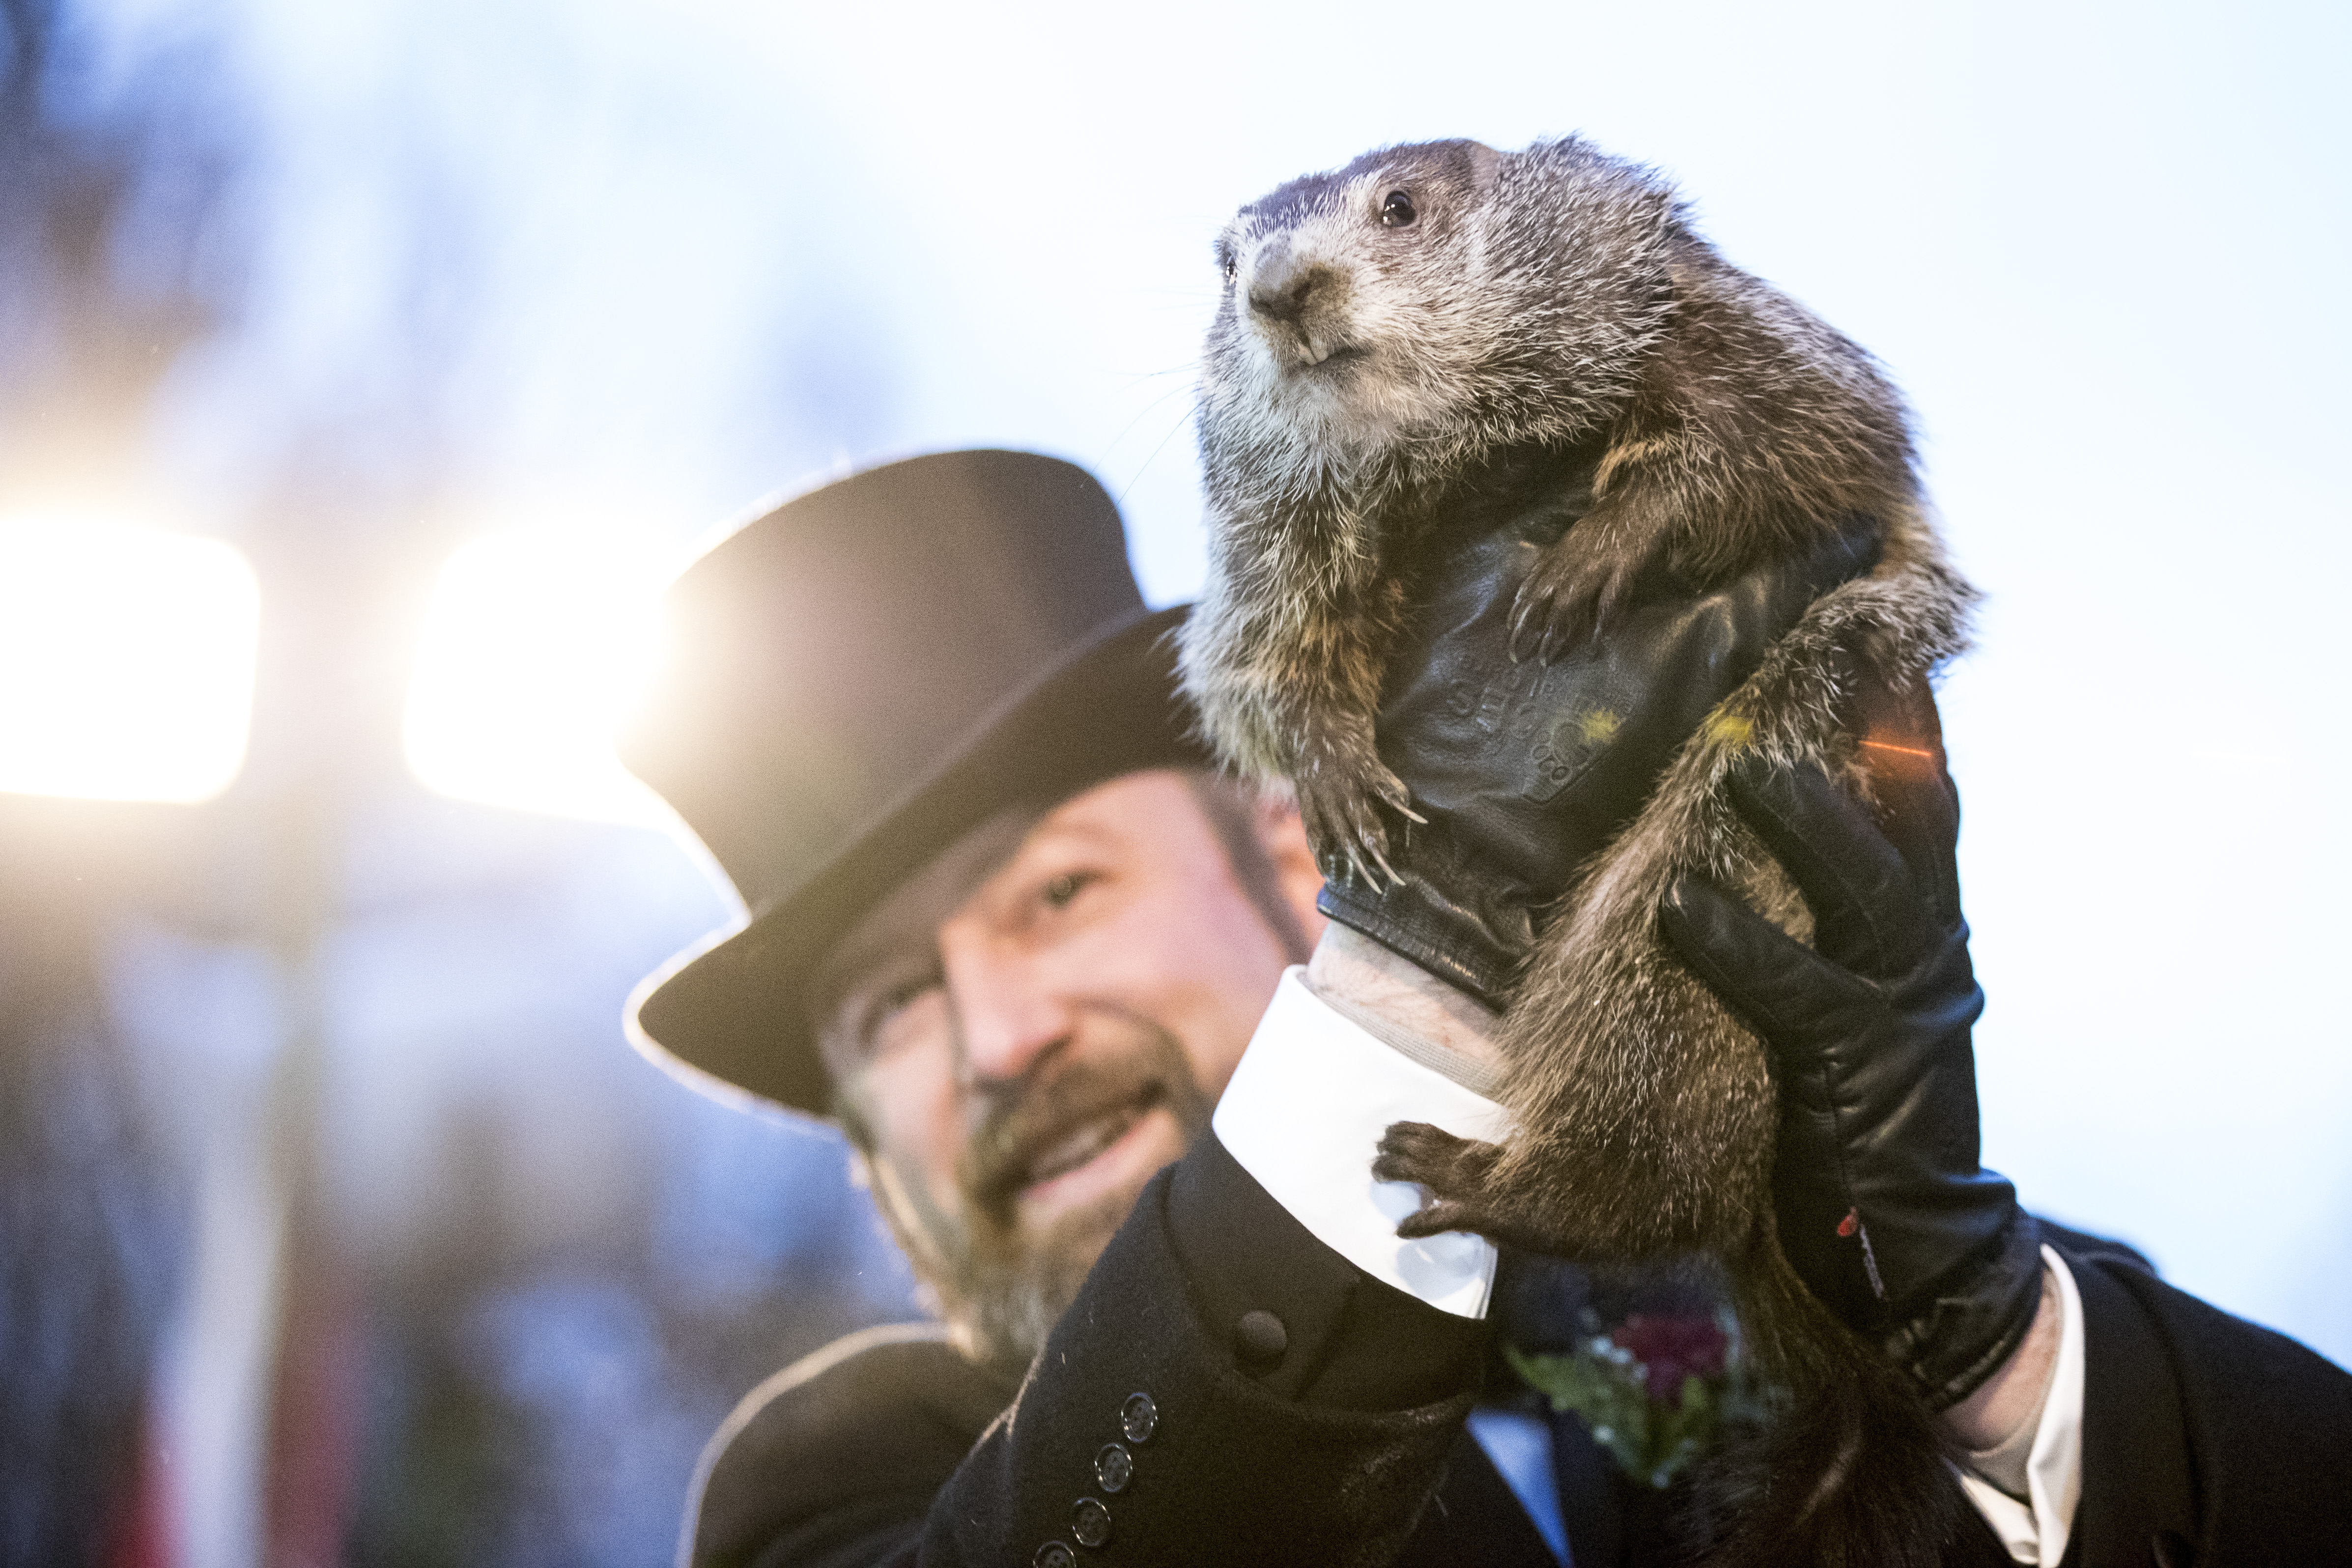 Punxsutawney Phil is held up by his handler for the crowd to see during the ceremonies for Groundhog day on February 2, 2018 in Punxsutawney, Pennsylvania.